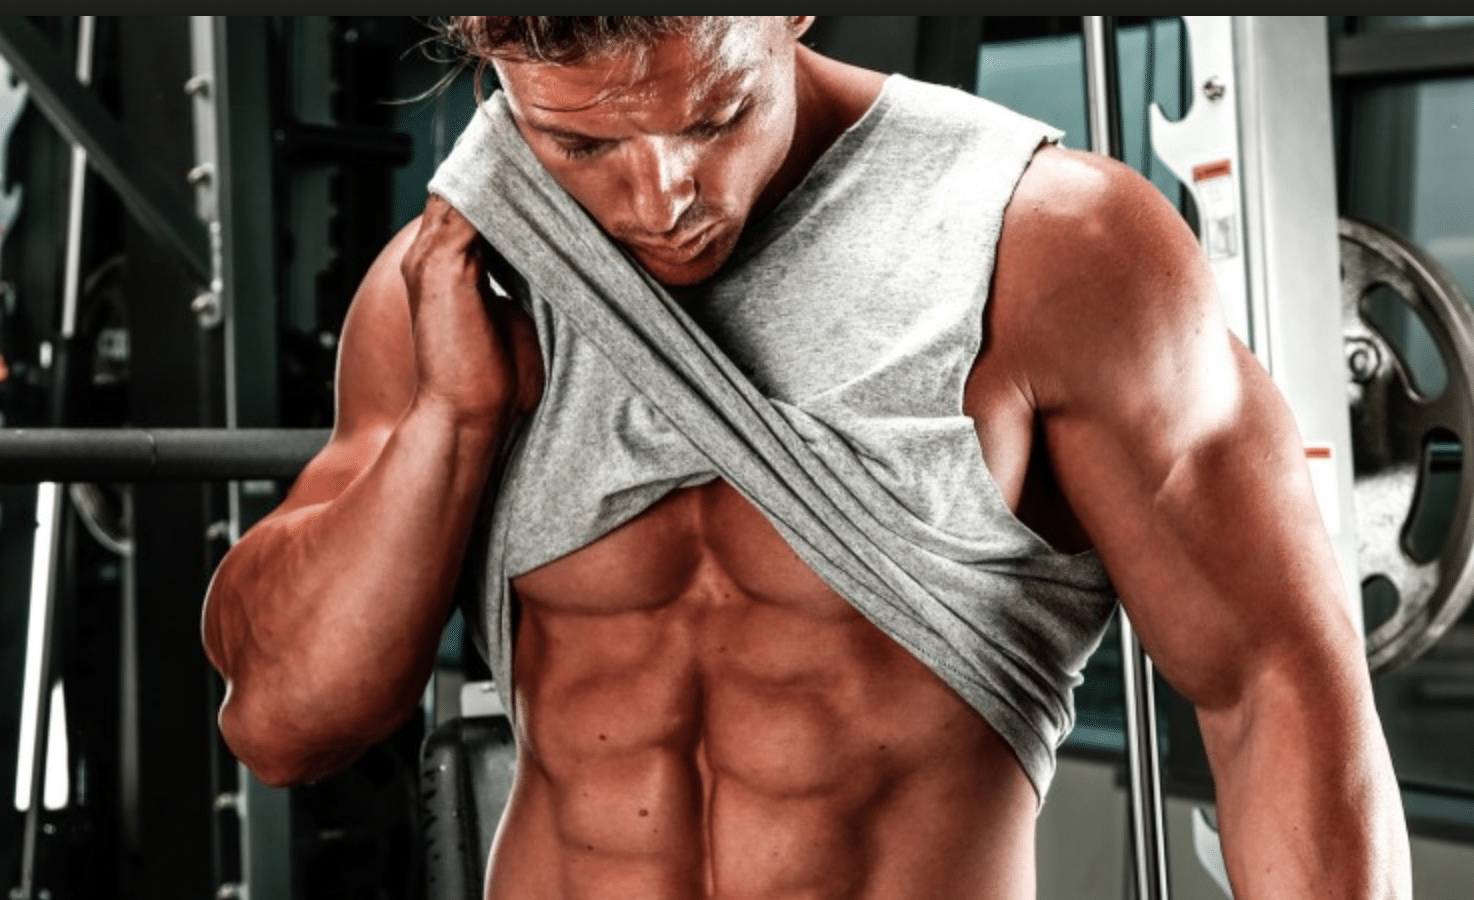 Stenabolic (SR9009) 2019: A Complete Guide For Beginners